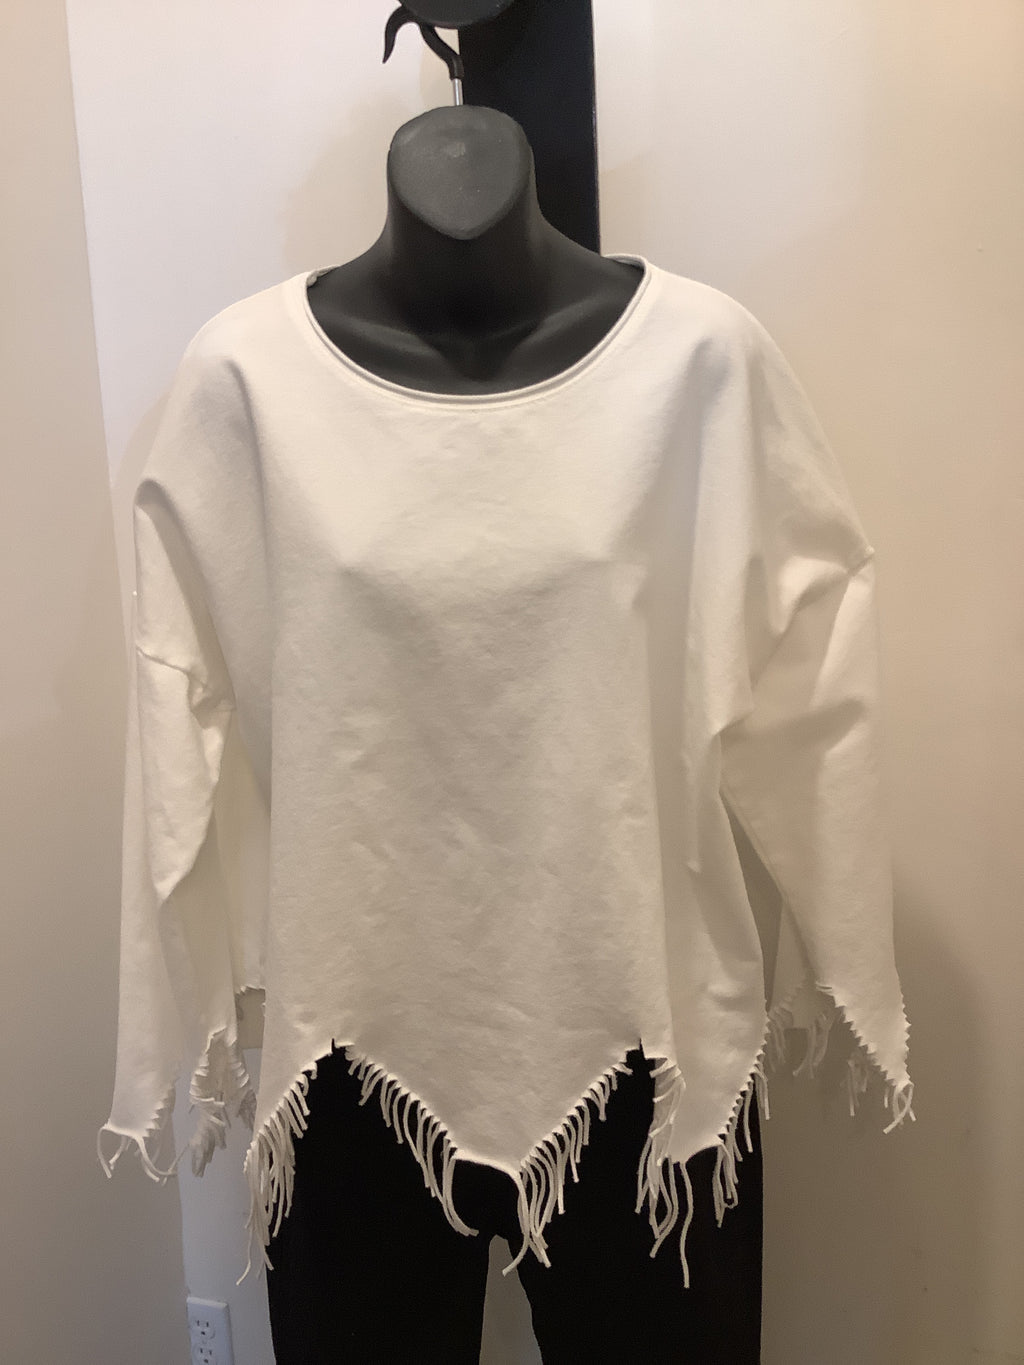 Bella Amore On Trend Fringed Top